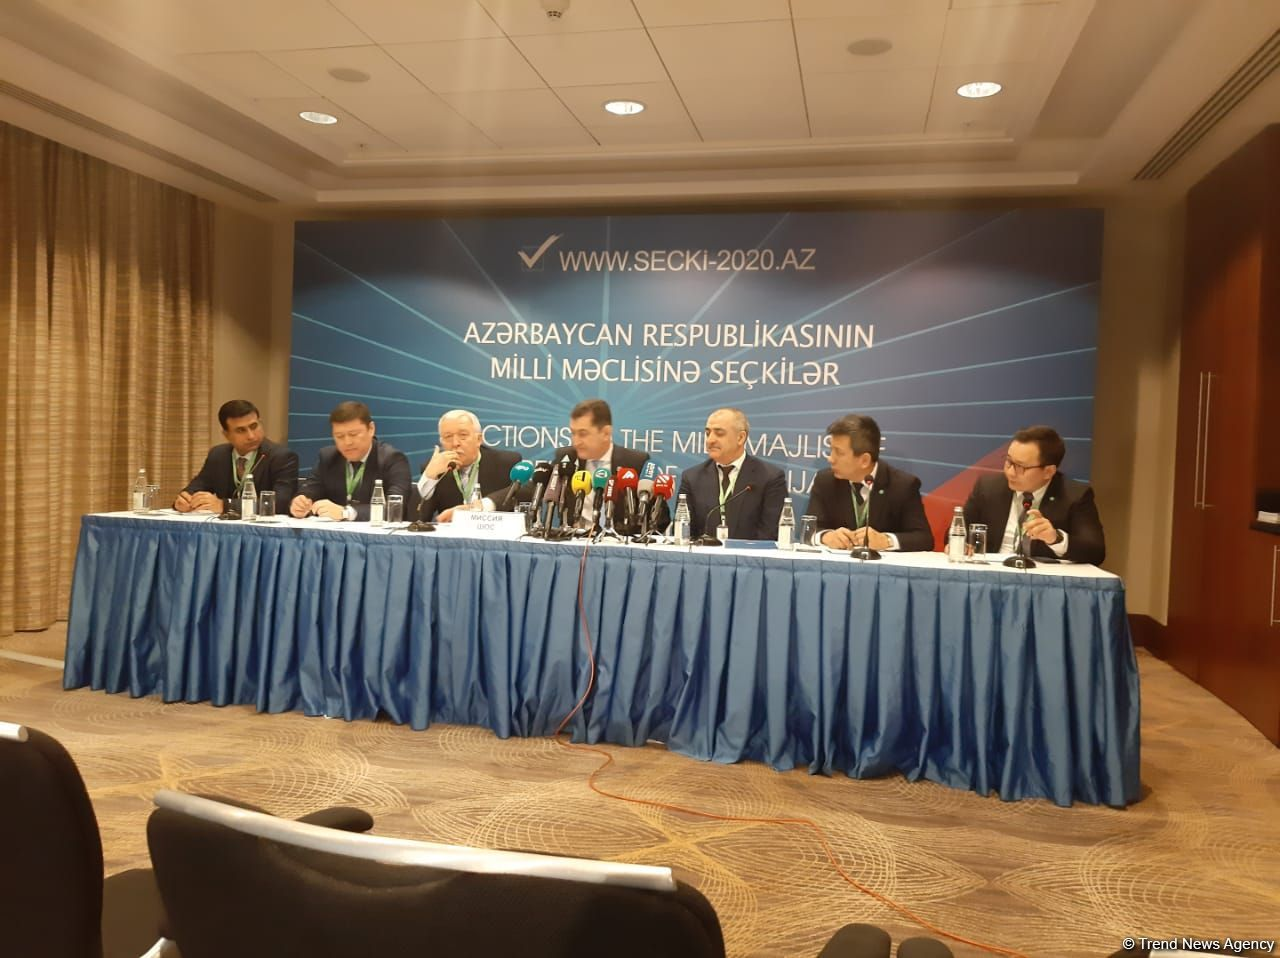 SCO observers recognize parliamentary elections in Azerbaijan as legitimate, transparent